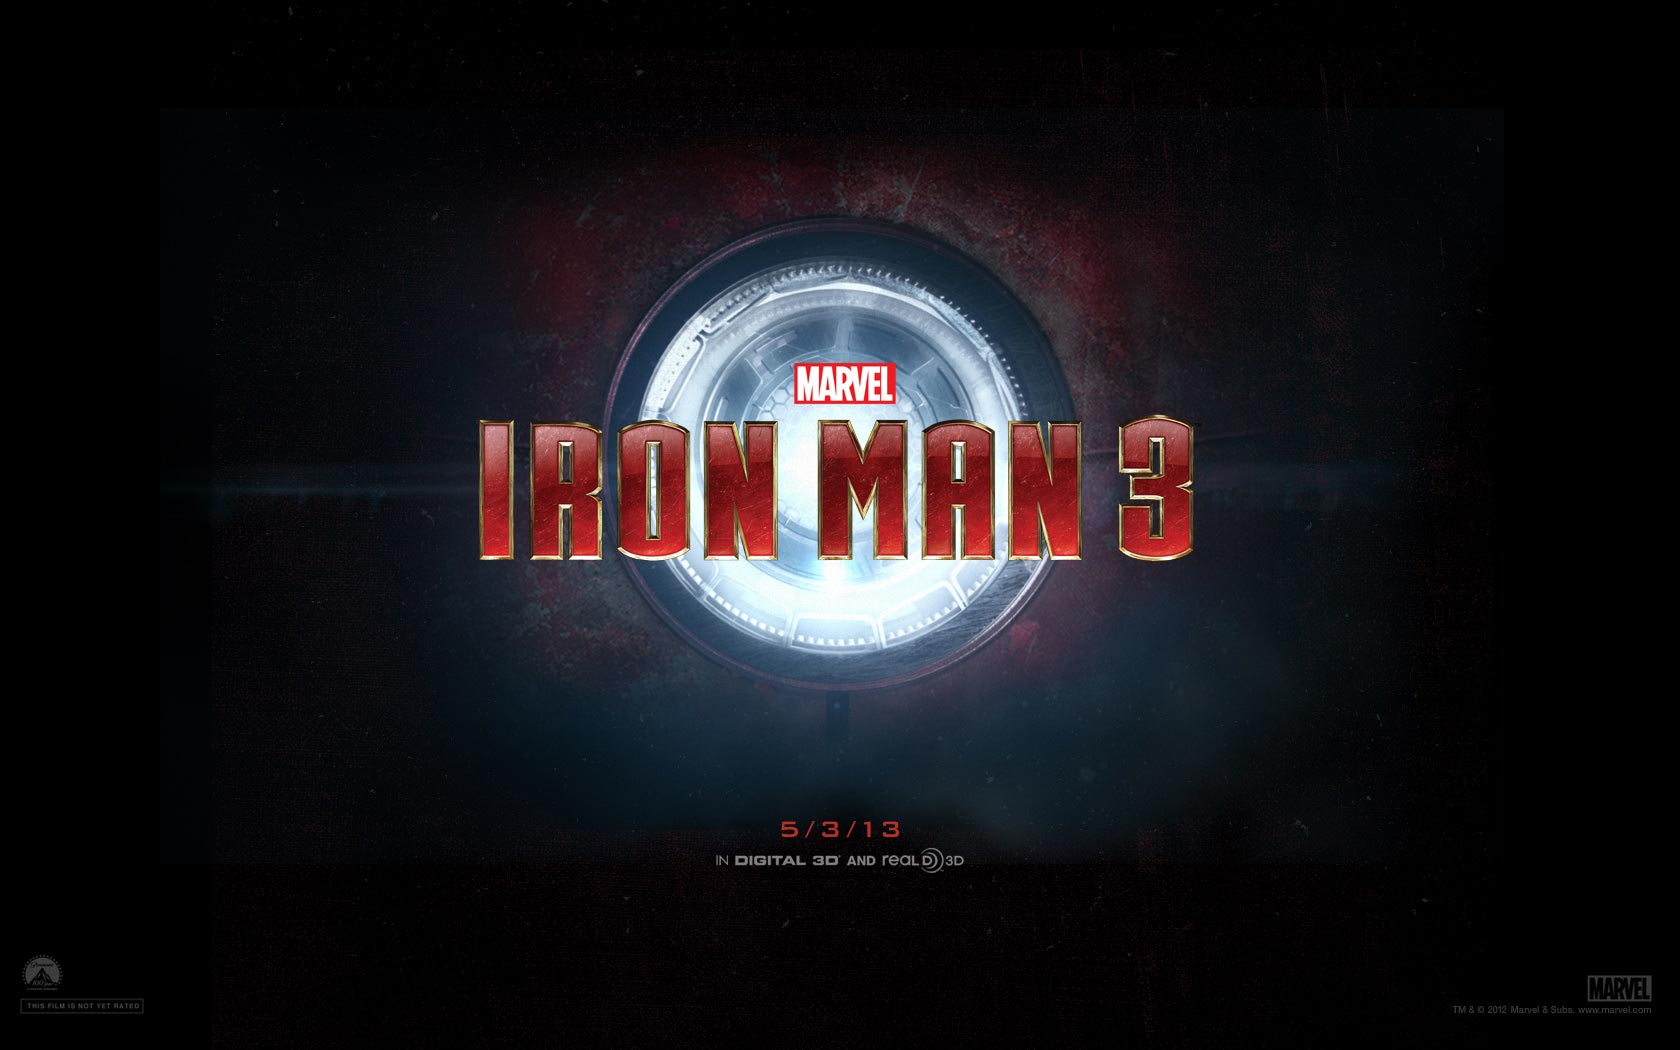 Iron Man 3 Wallpaper   Iron Man 3 Wallpaper 33506139 1680x1050